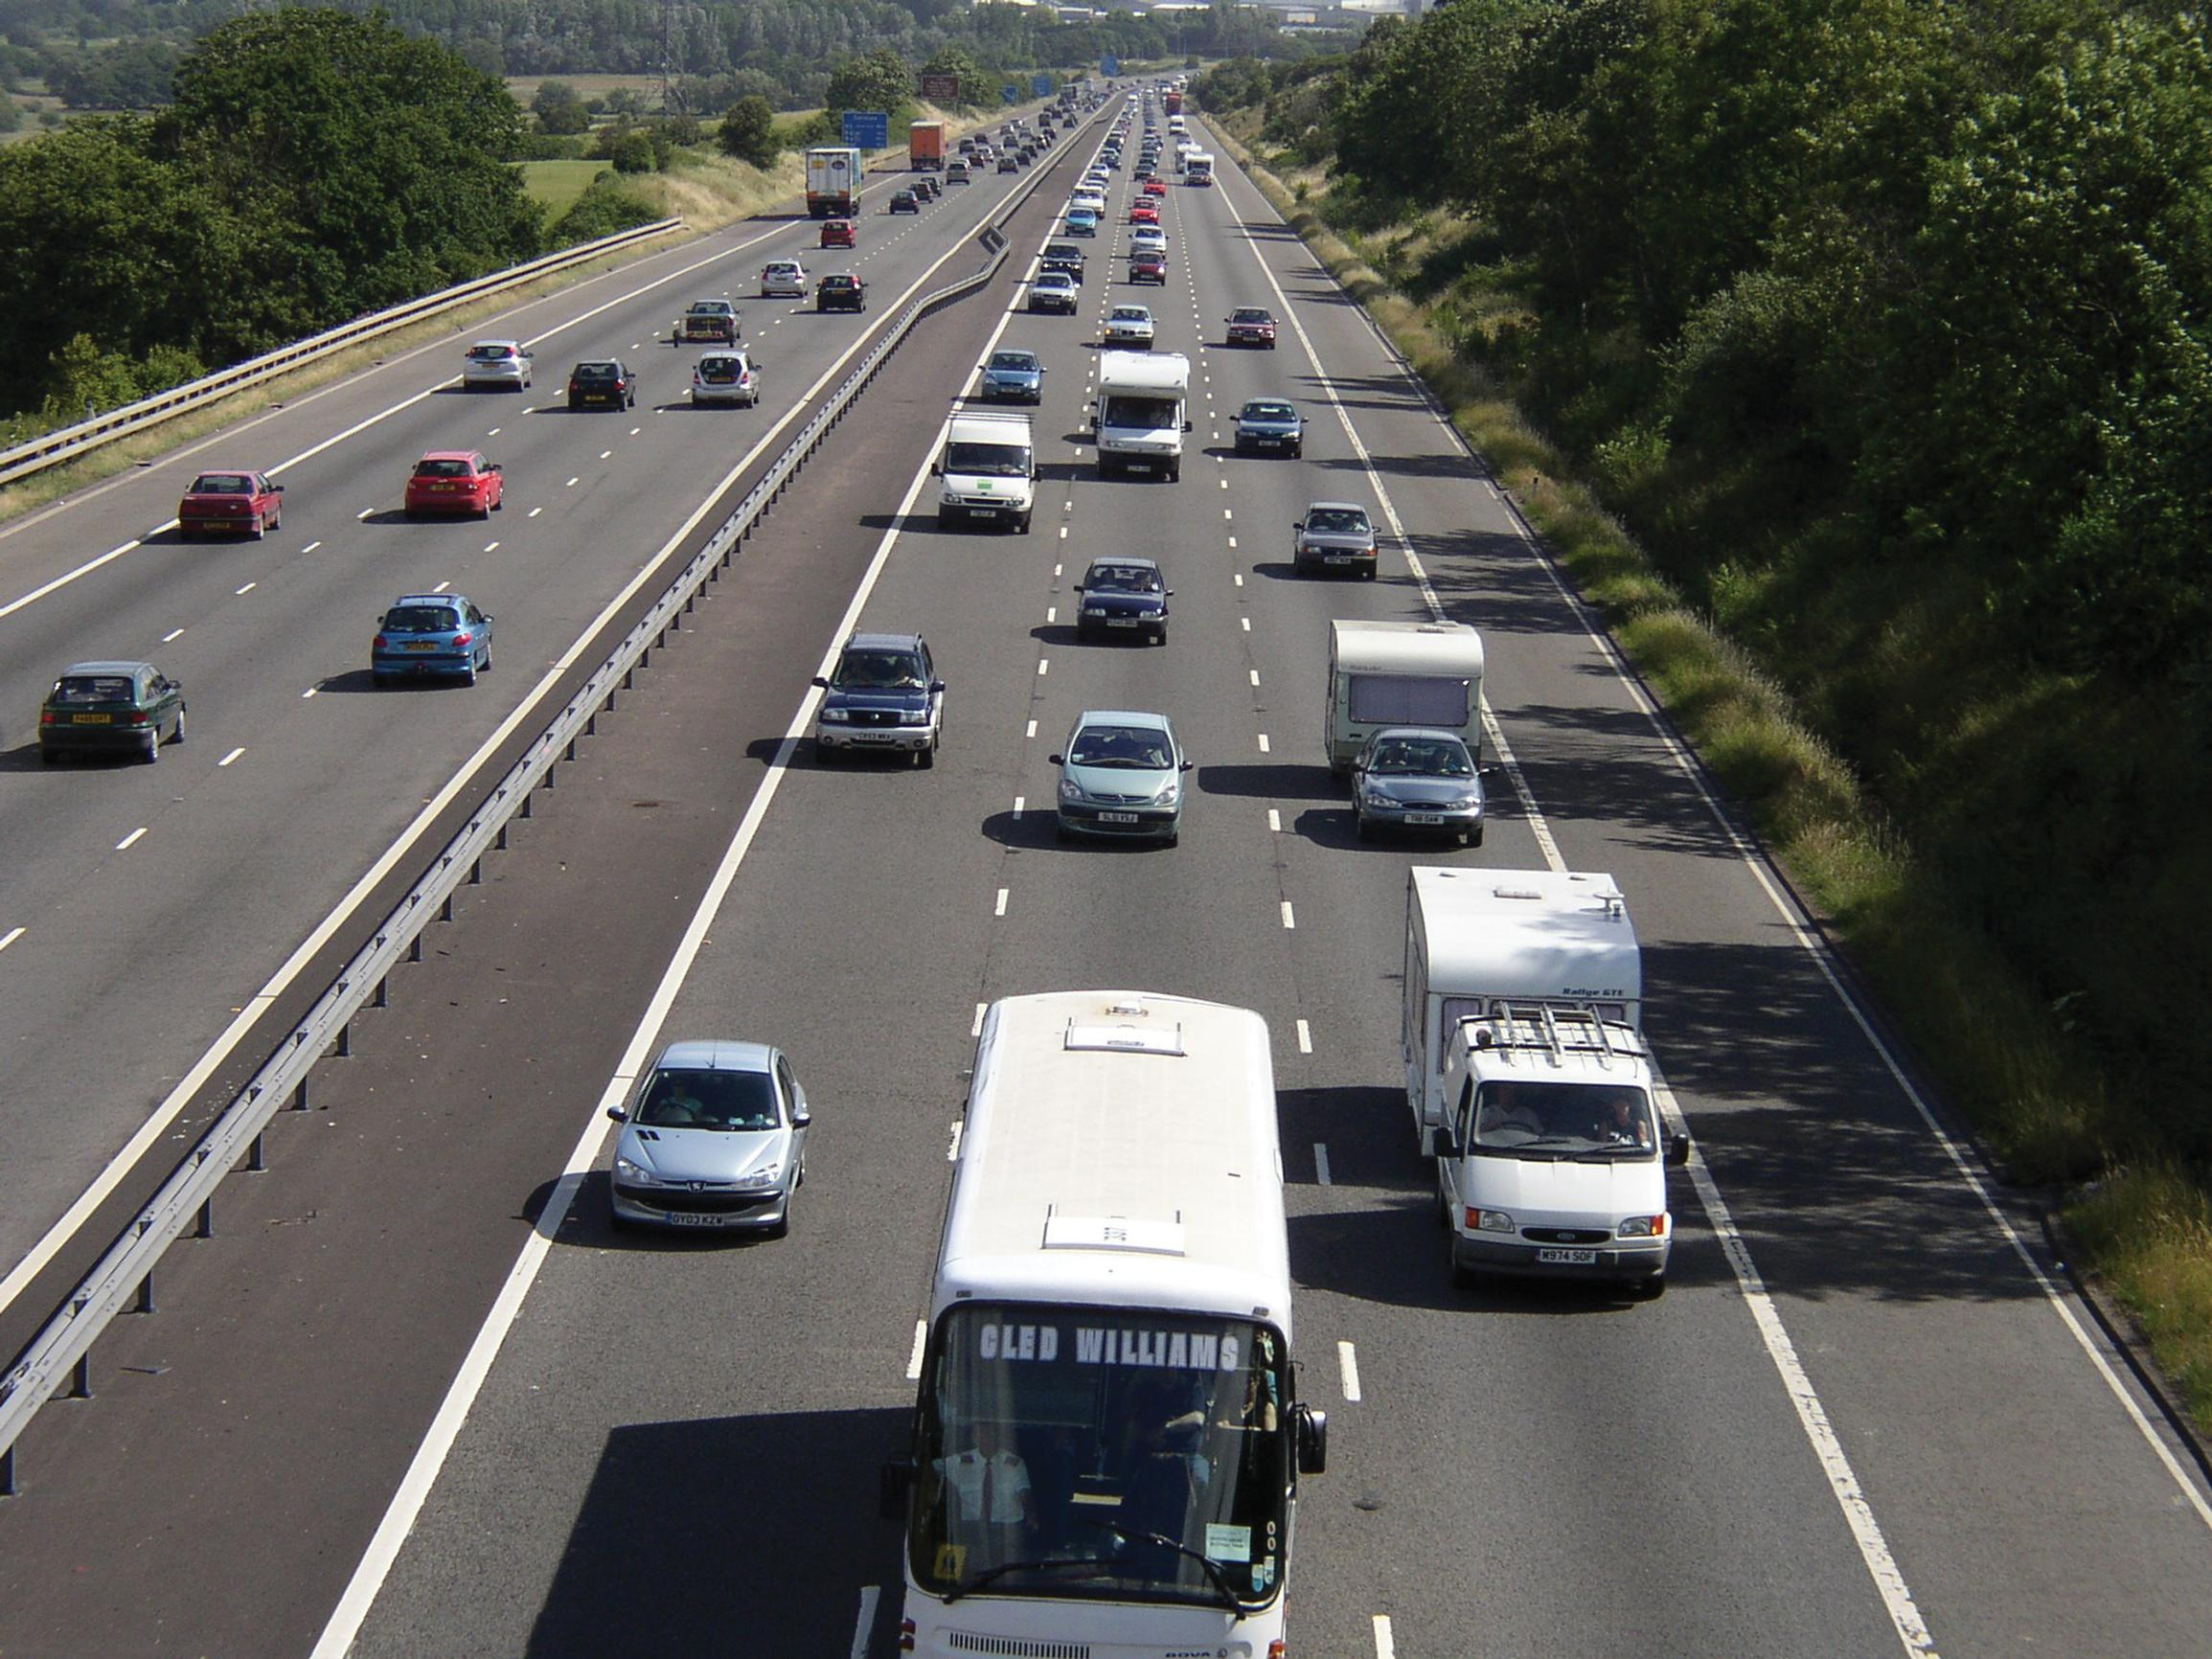 Five road pricing blueprints shortlisted for £250,000 prize